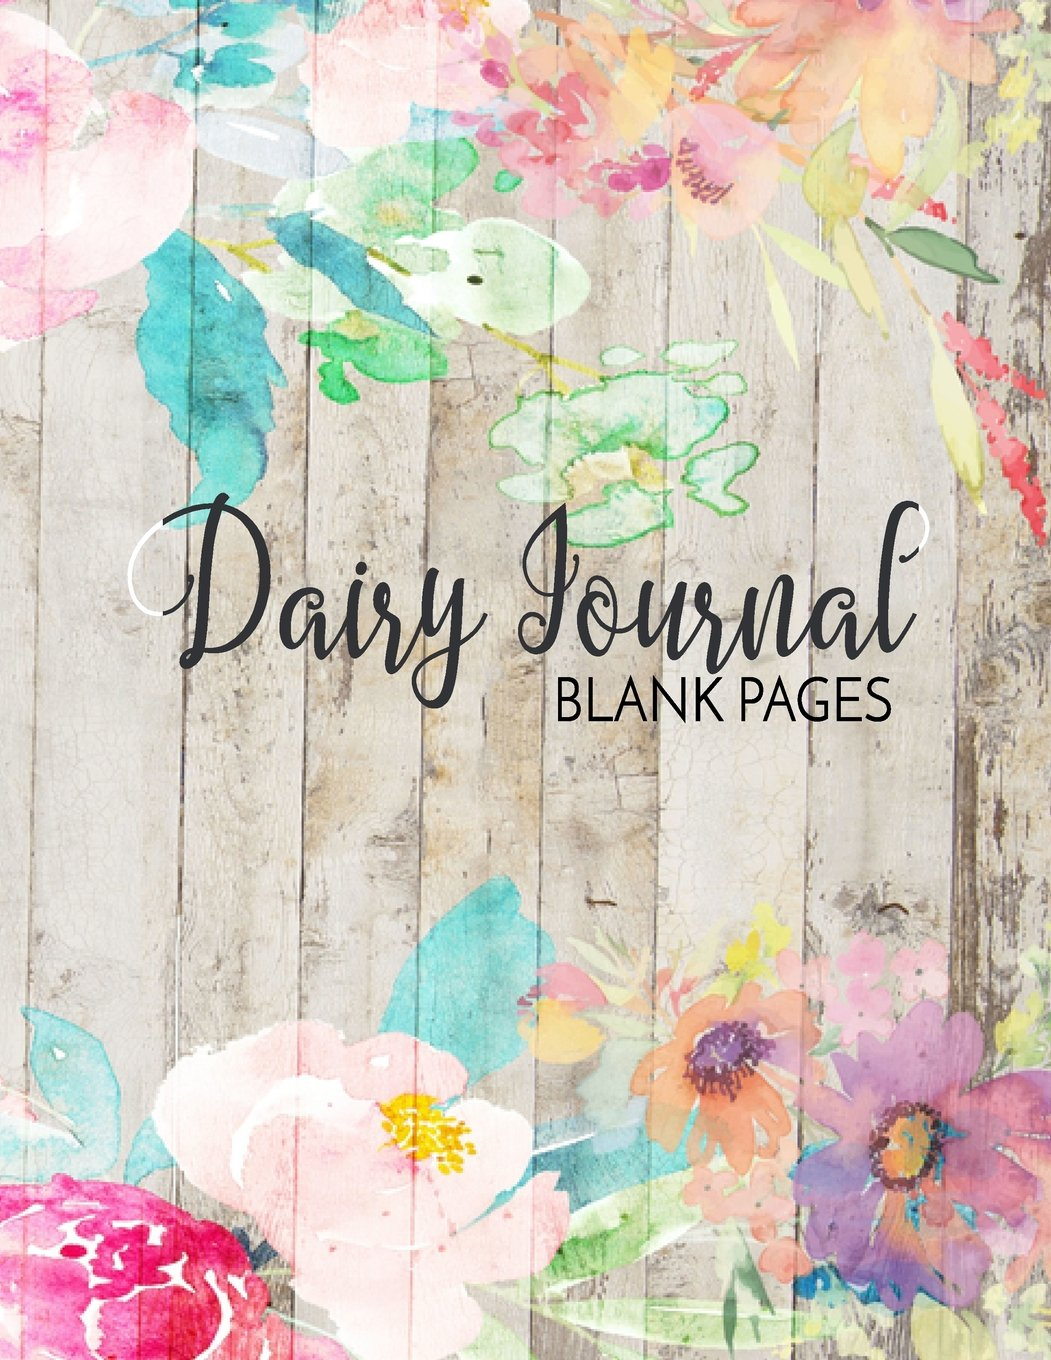 Diary Journal Blank Pages: 8.5 x 11, 120 Unlined Blank Pages For Unguided Doodling, Drawing, Sketching & Writing